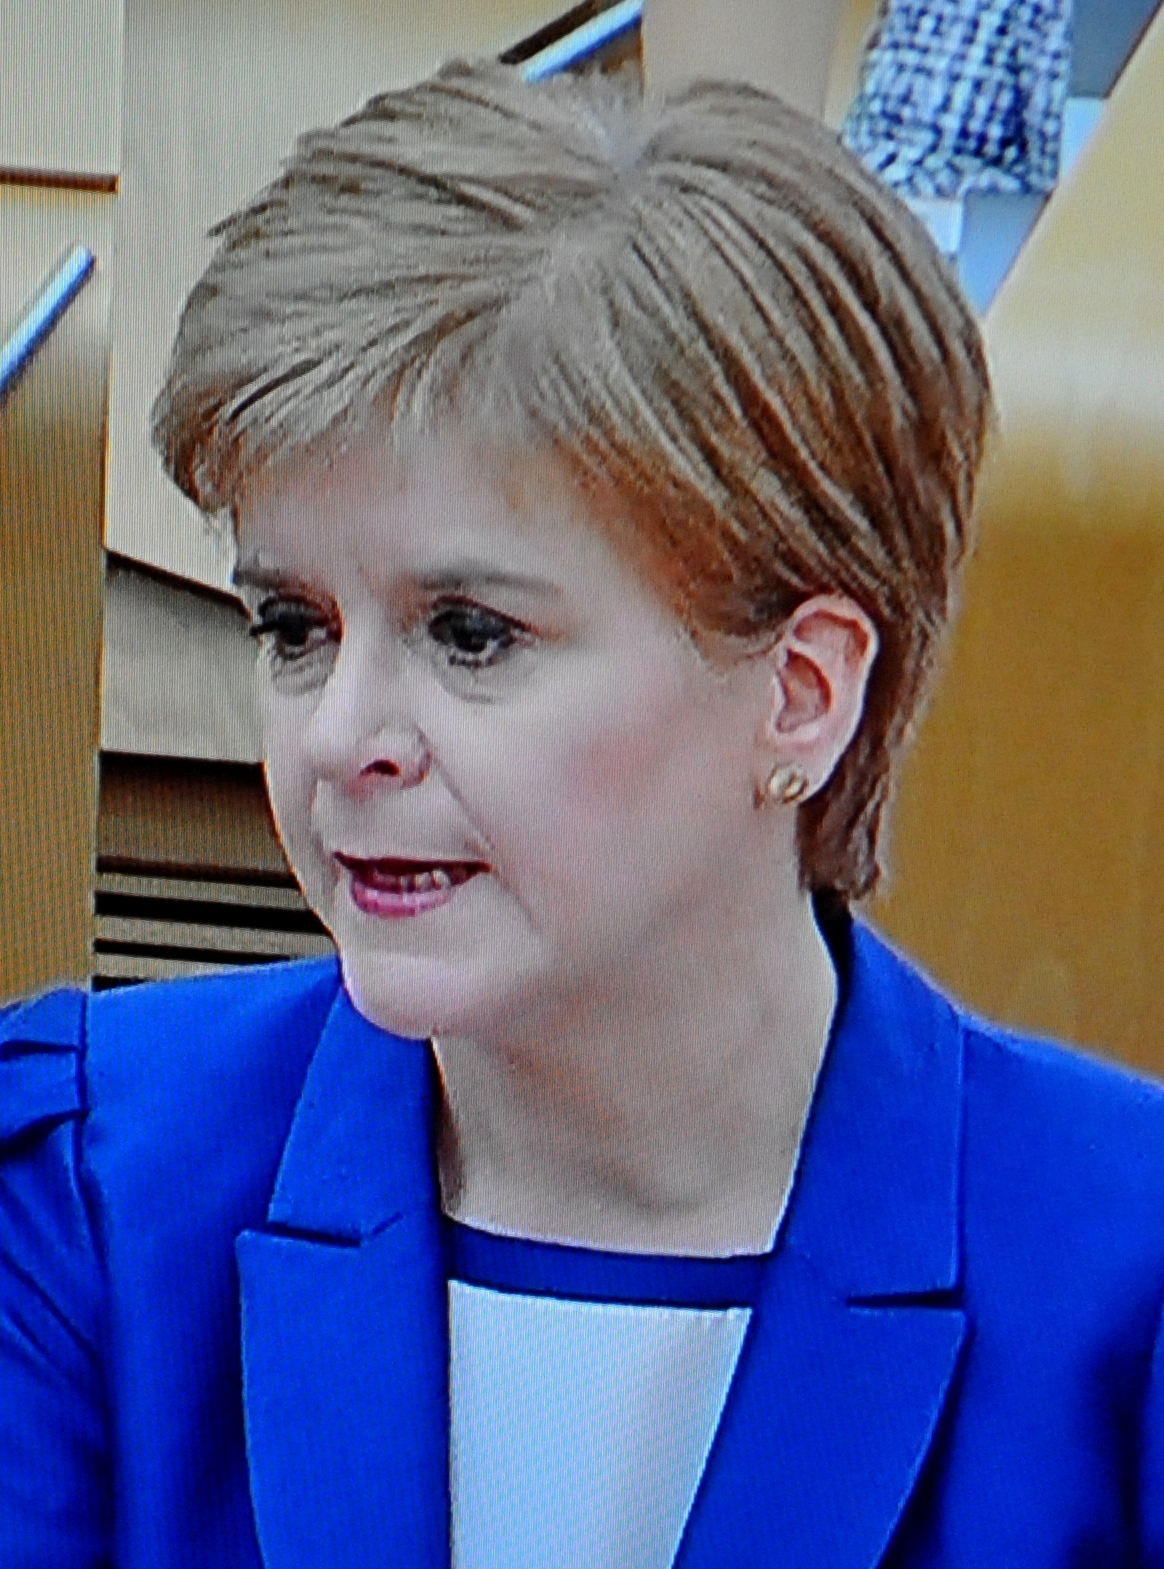 FM SAYS SHE WON'T CALL THE POLICE – NOT YET ANYWAY